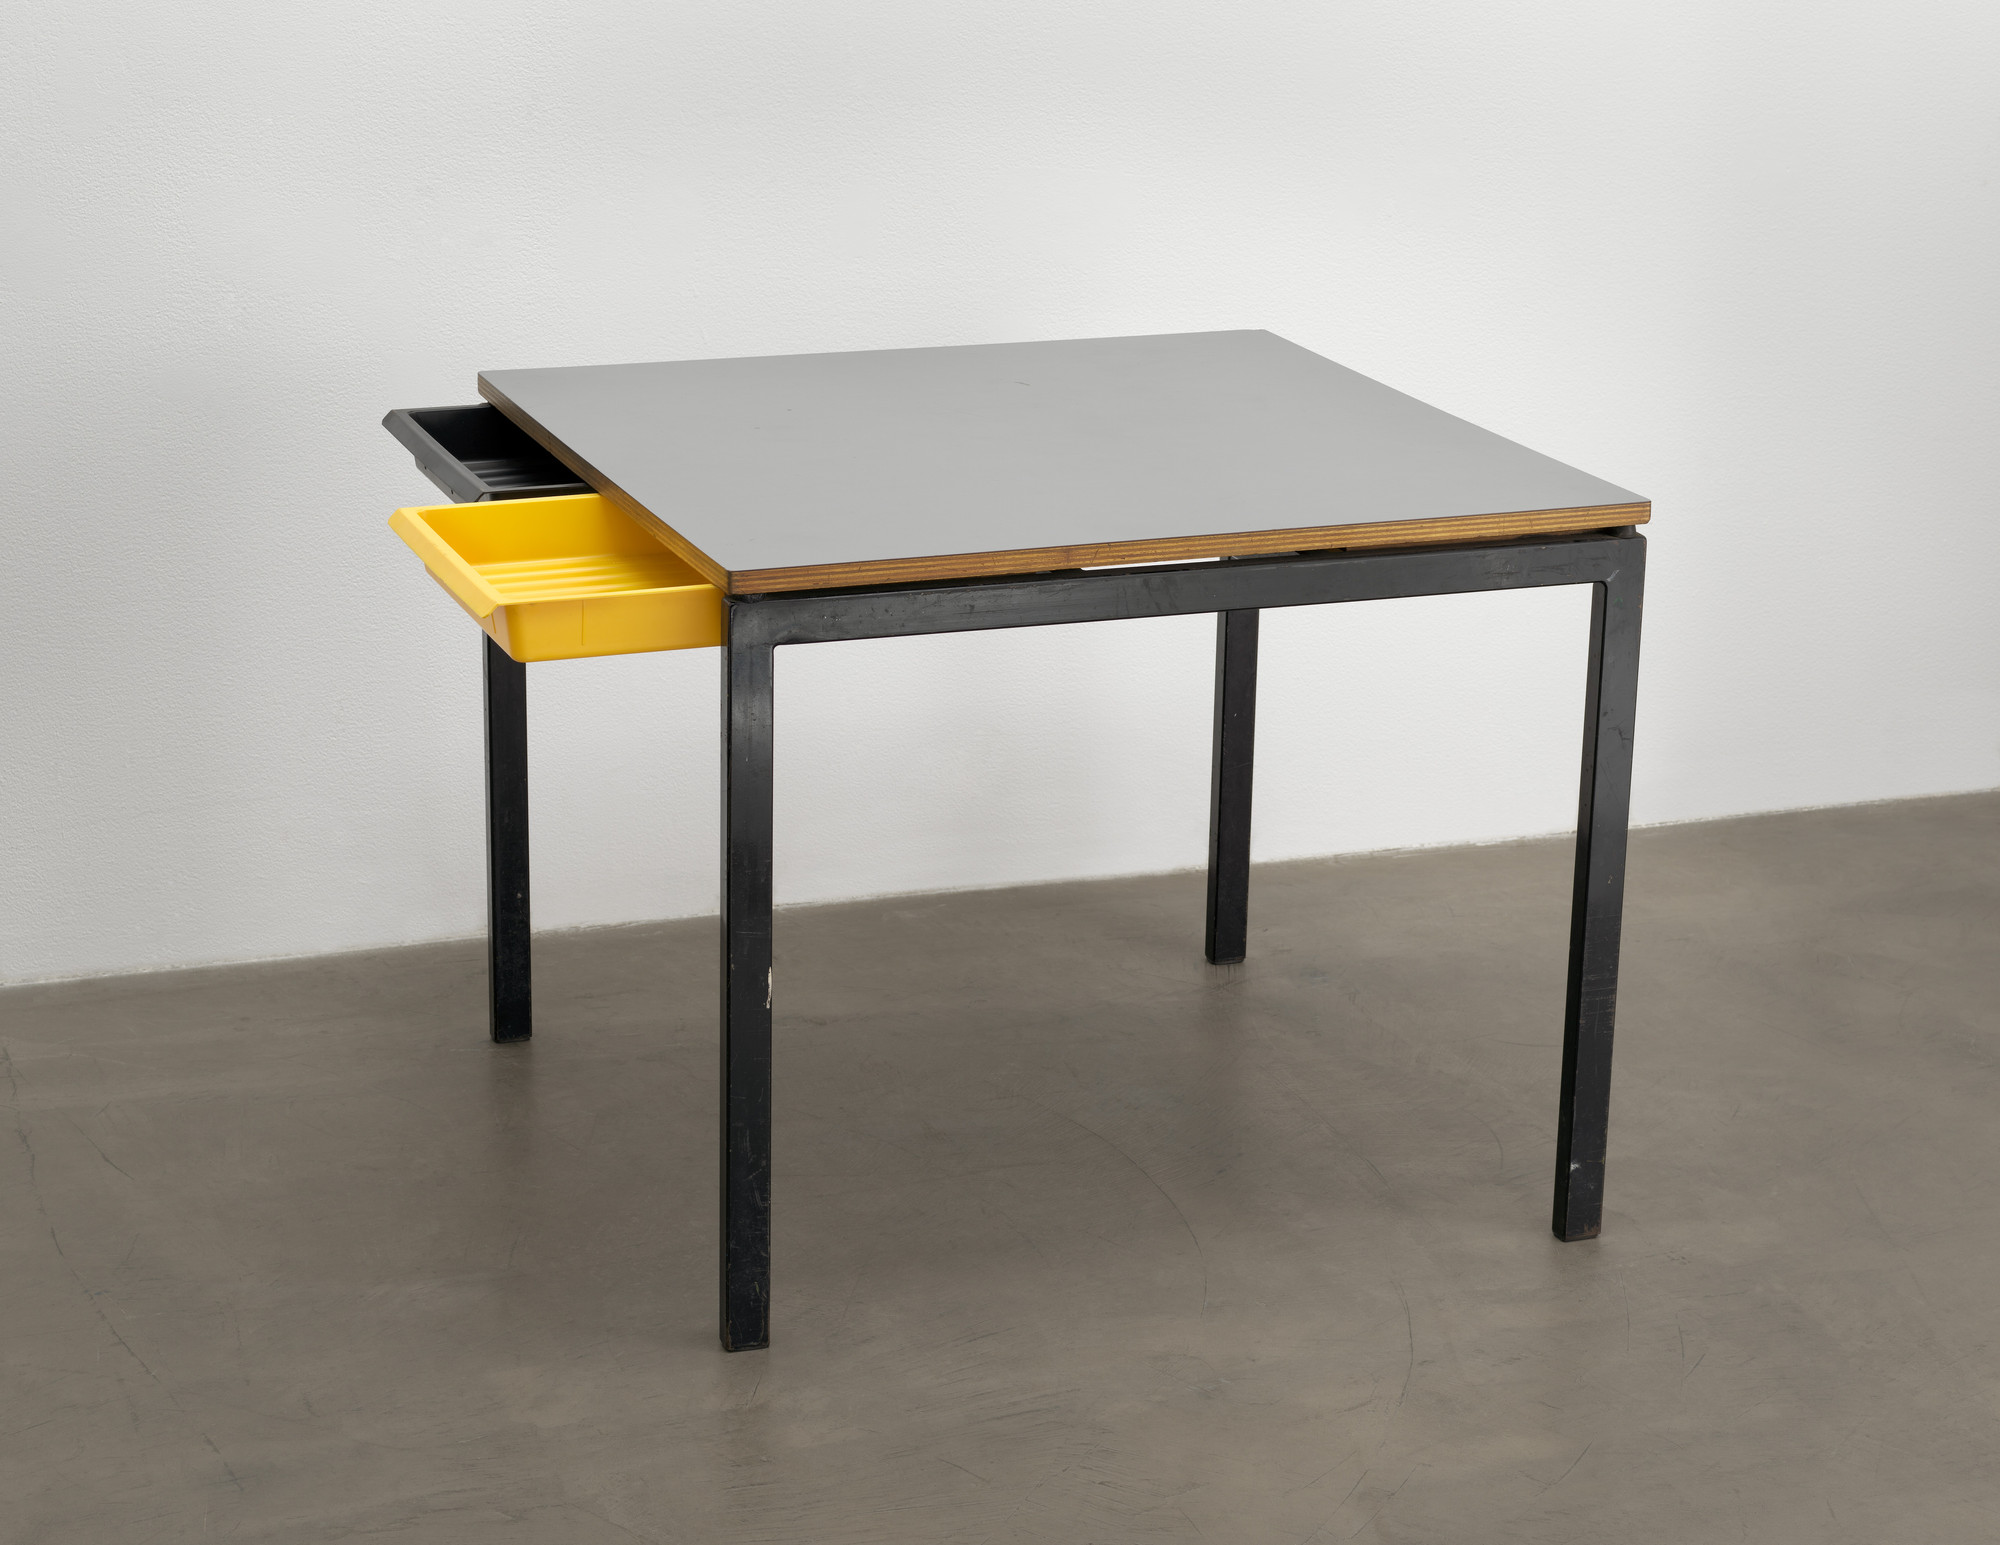 Awe Inspiring Charlotte Perriand Le Corbusier Charles Edouard Jeanneret Ocoug Best Dining Table And Chair Ideas Images Ocougorg